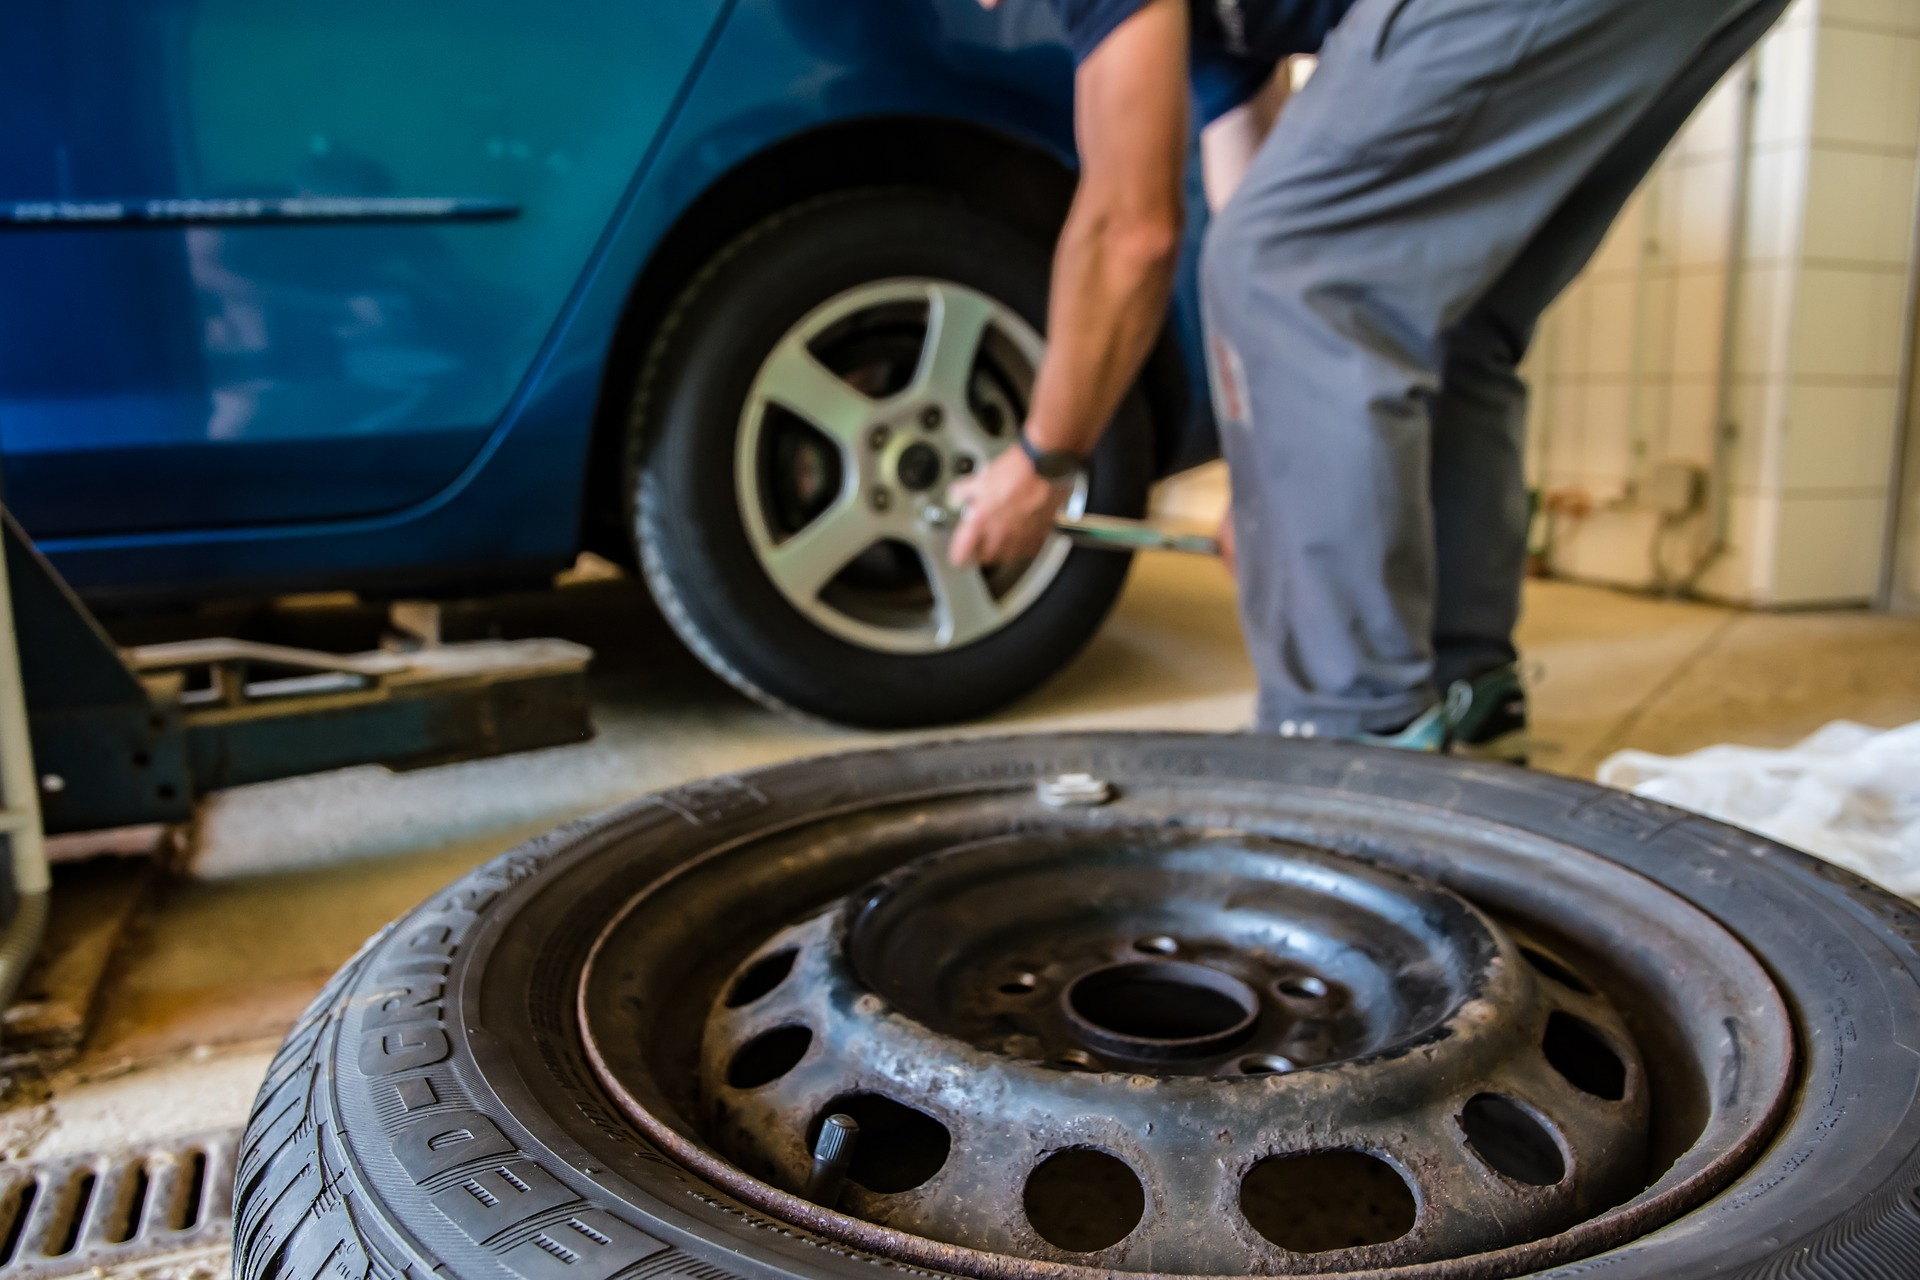 Changing a flat car tire